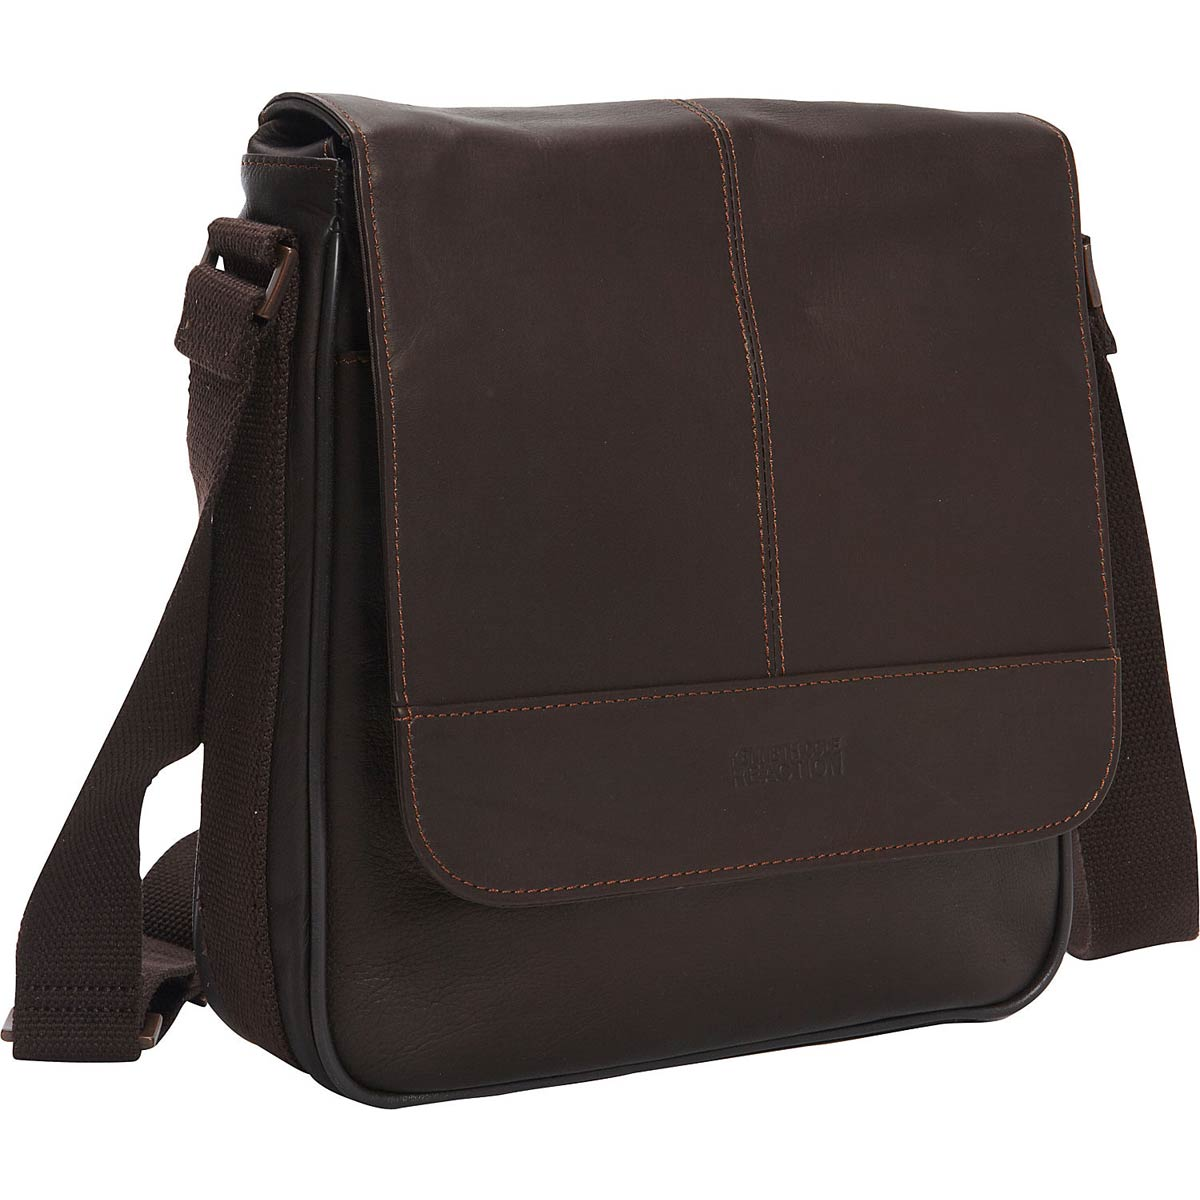 "Kenneth Cole Reaction ""A New Bag-inning"" Single Gusset Flapover Day Bag / iPad / Tablet Bag"